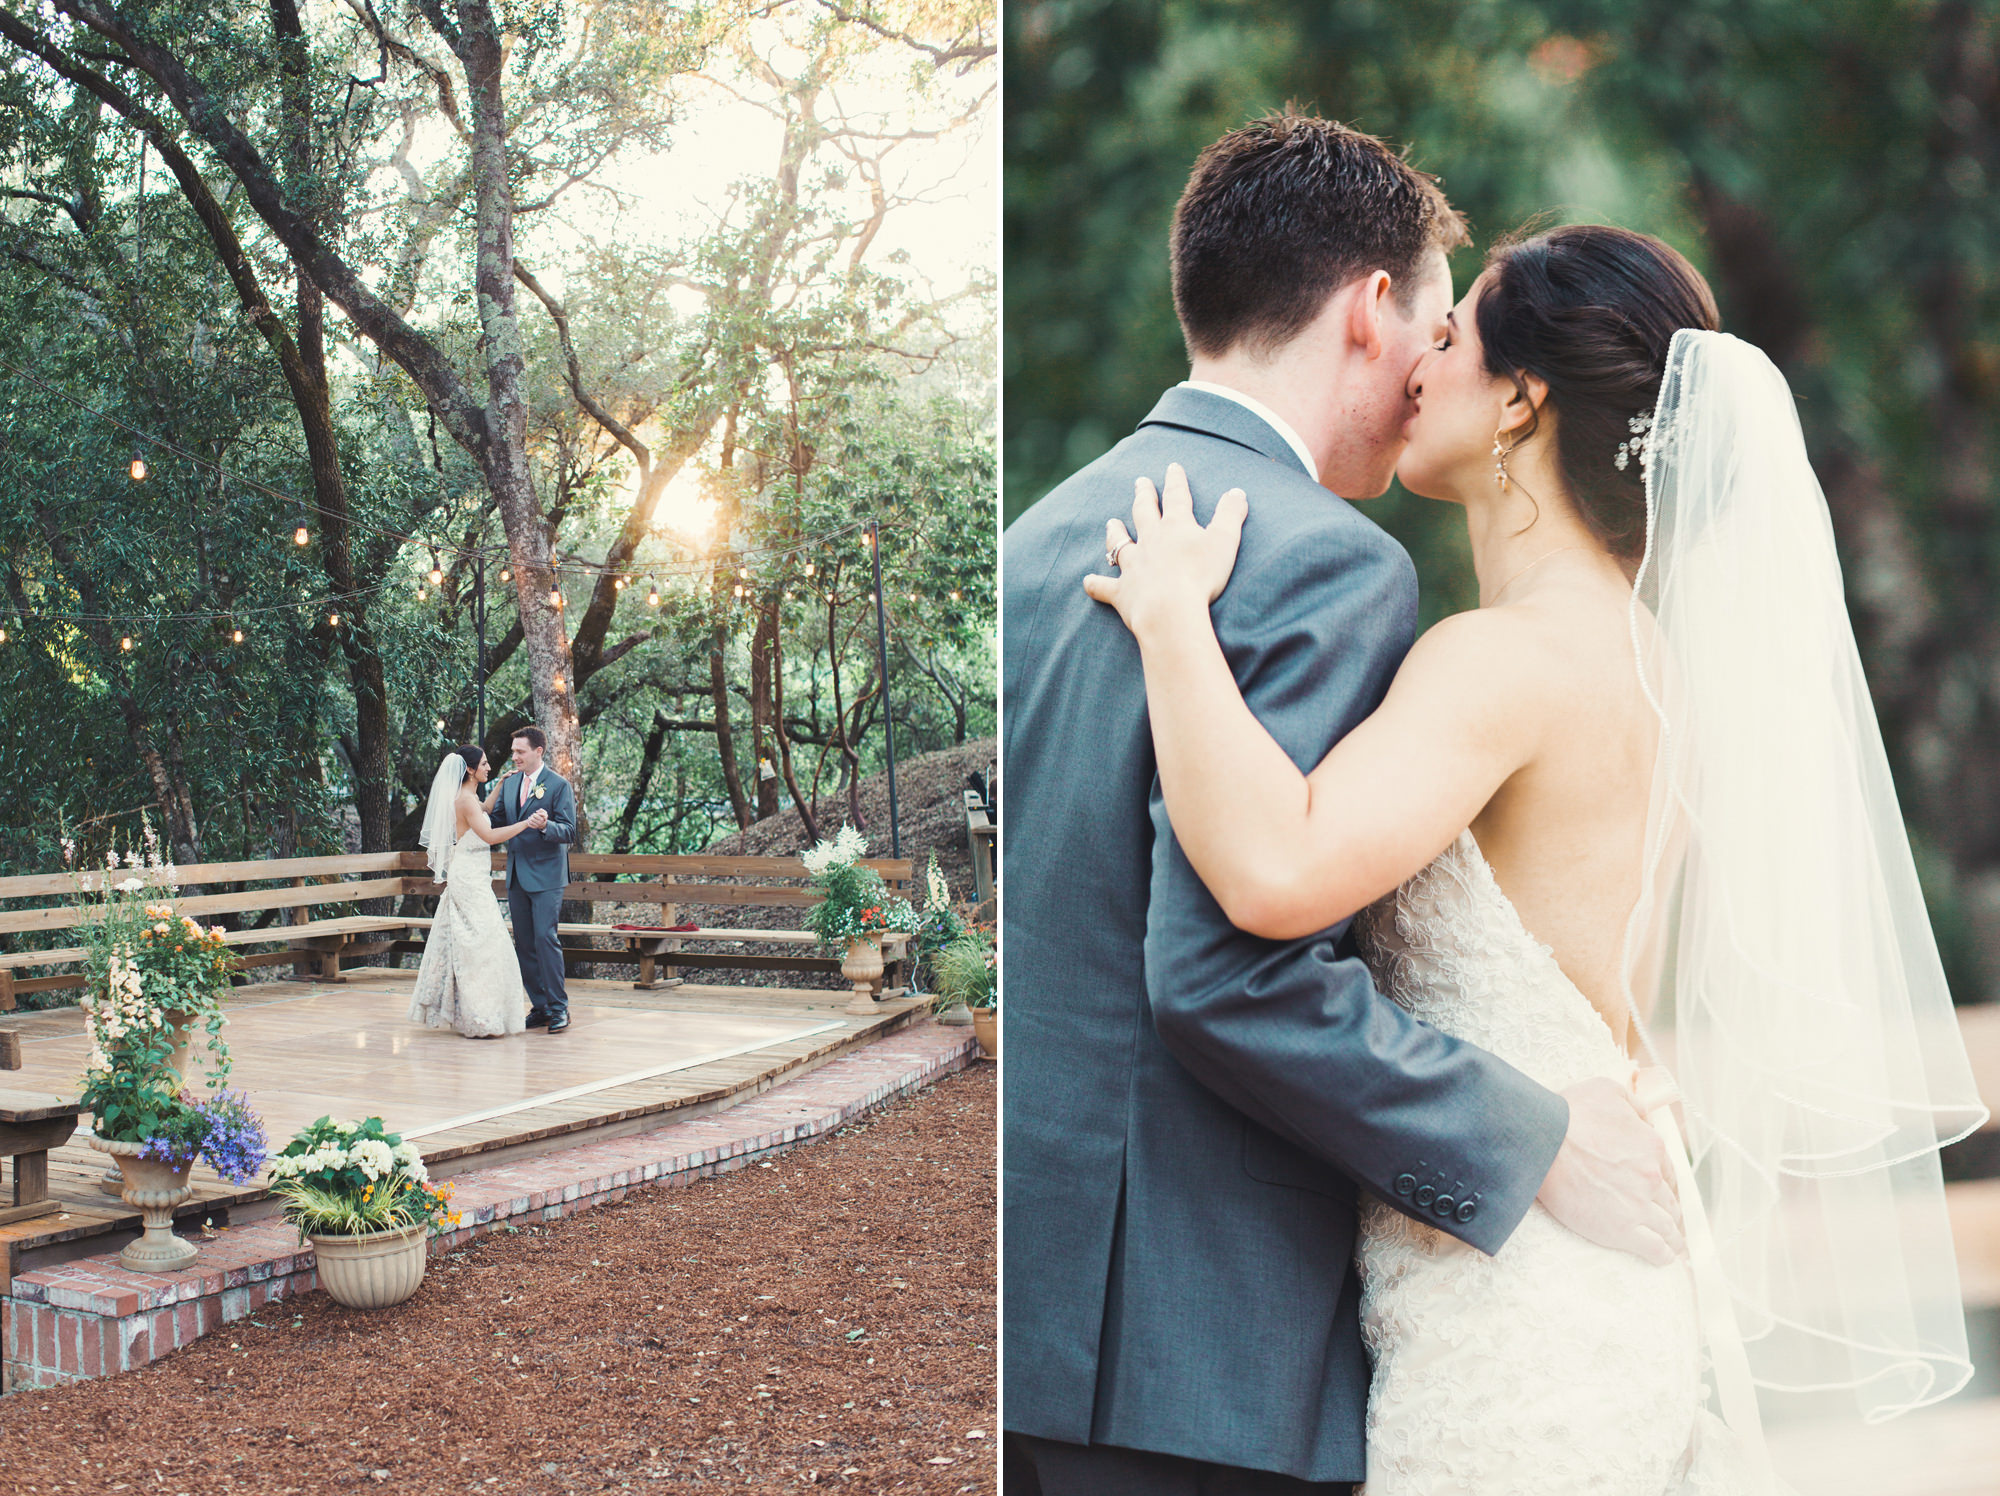 Backyard Wedding in California©Anne-Claire Brun 0035